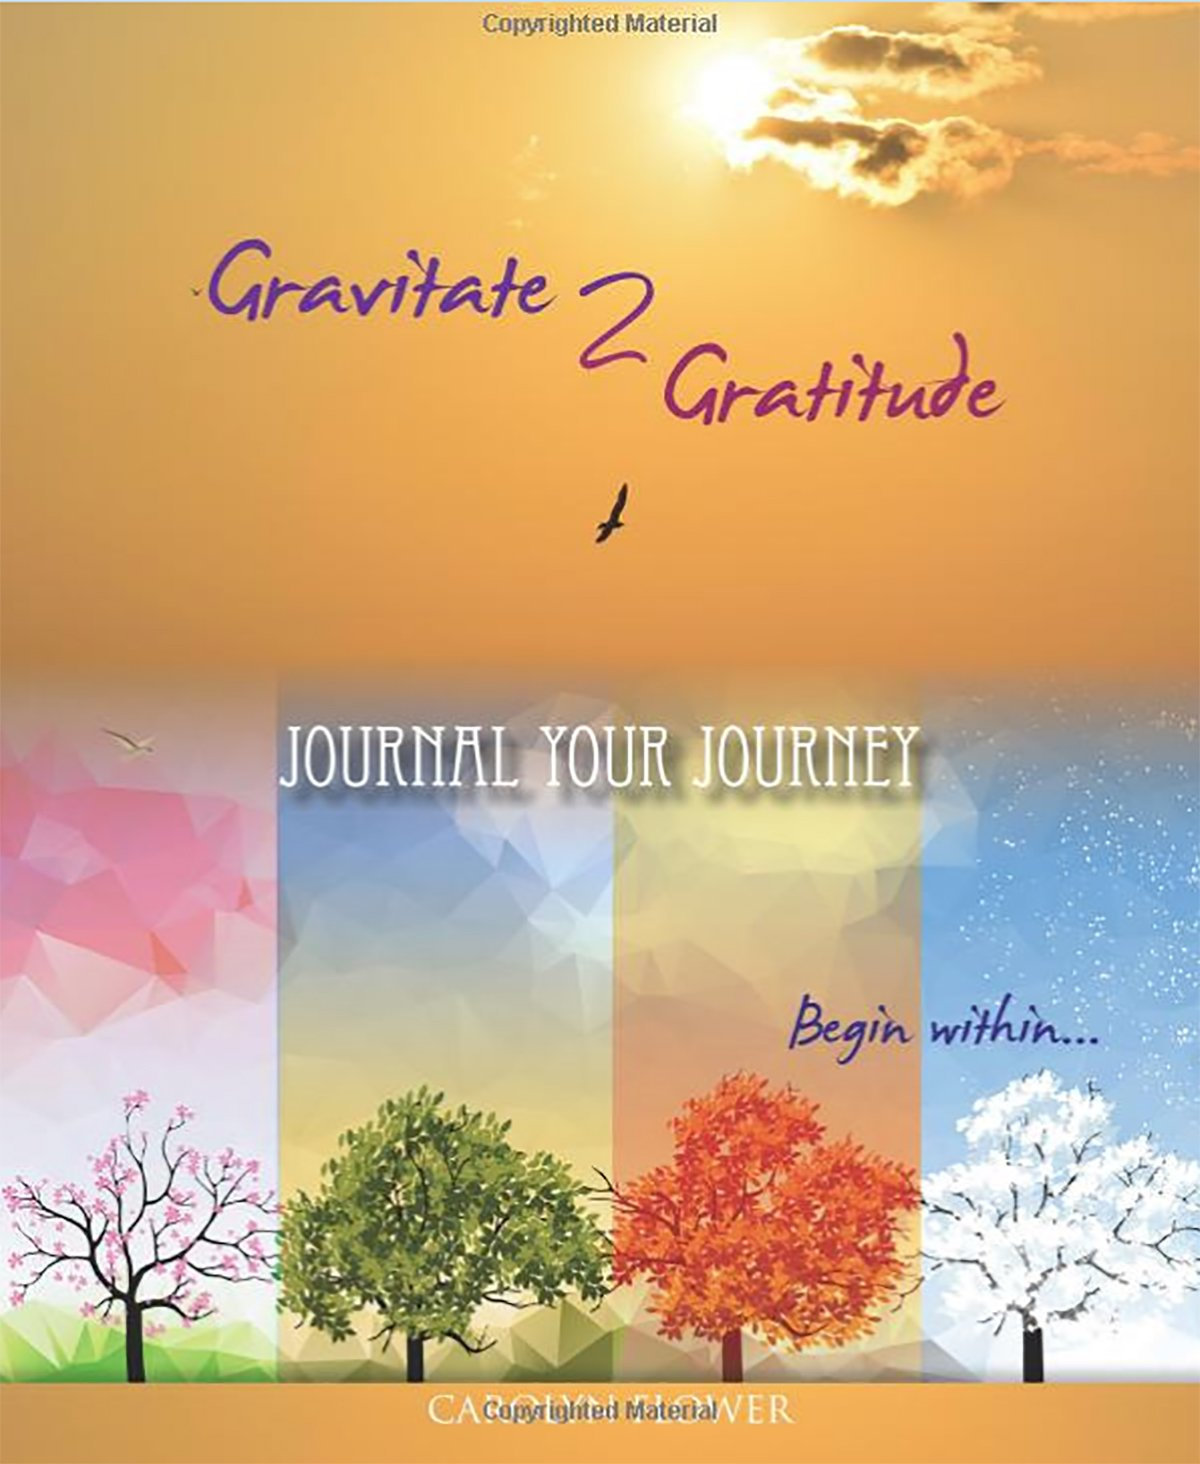 Gravitate to Gratitude by Carolyn Flower